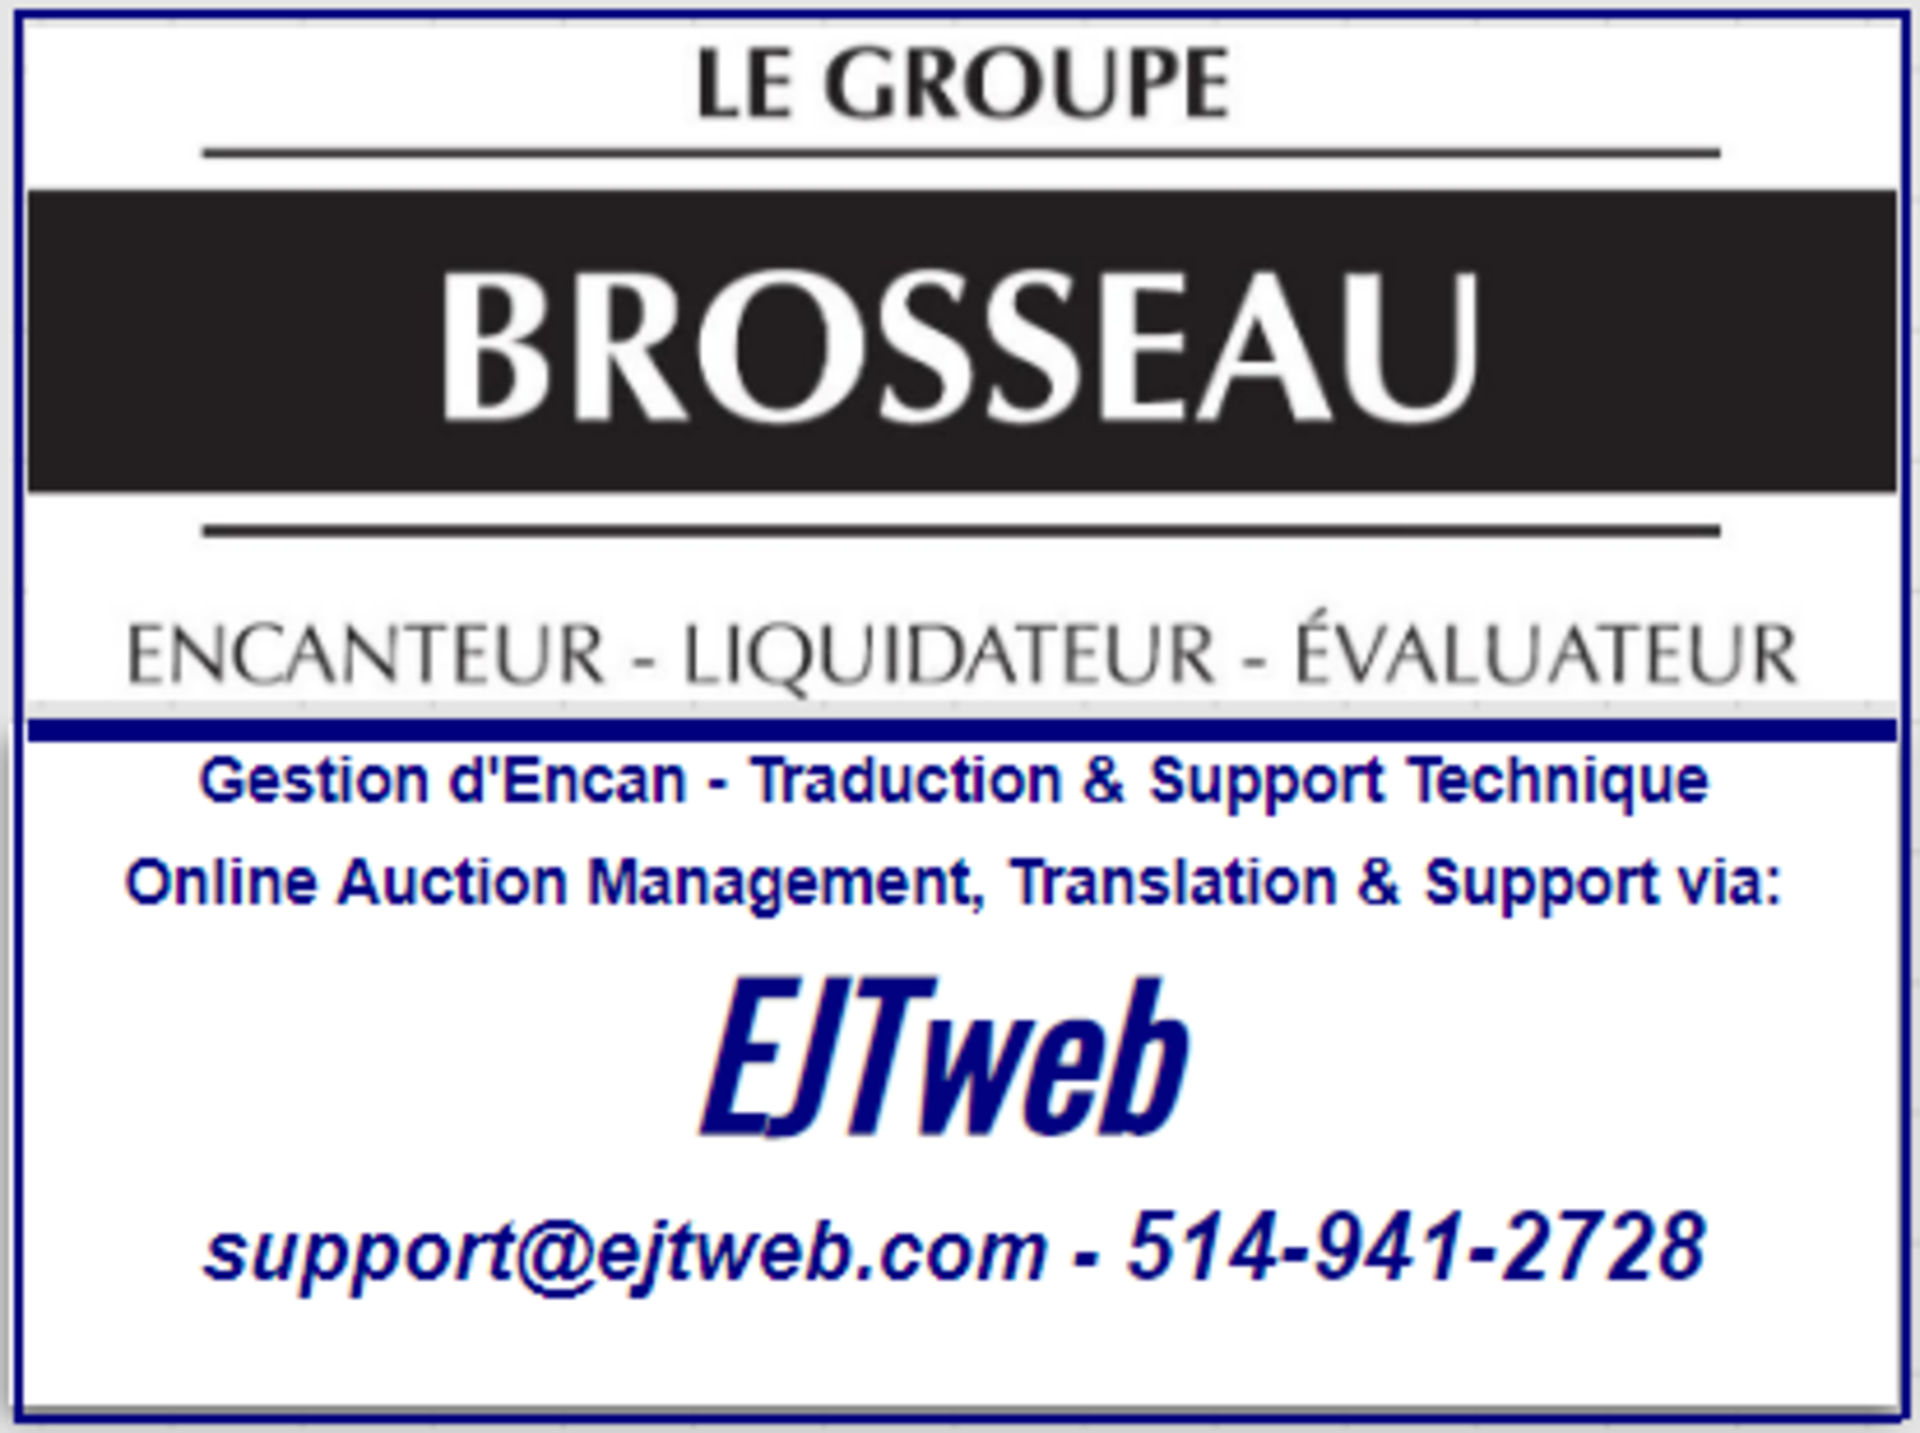 Lot 0 - Online SUPPORT / ASSISTANCE en ligne : 514-941-2728 - support@ejtweb.com